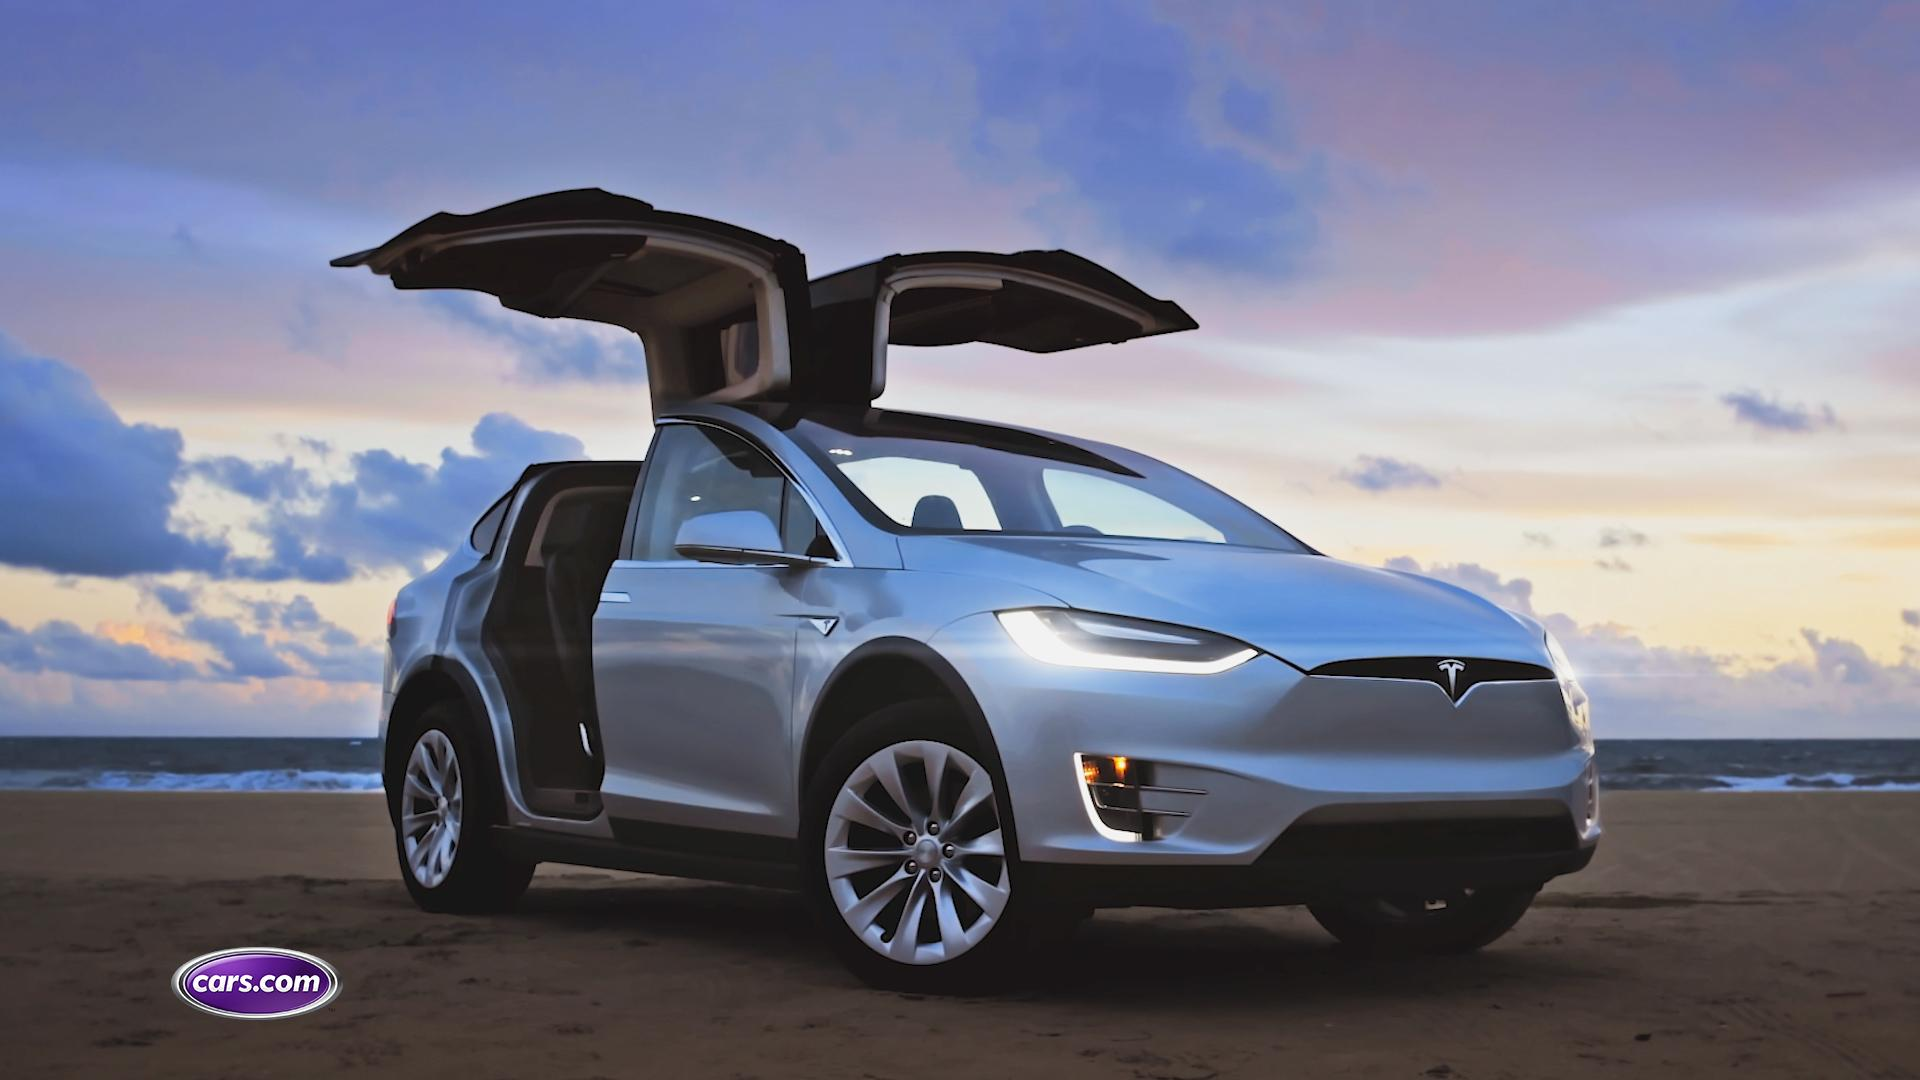 Video: Our Week in the Tesla Model X —Cars.com